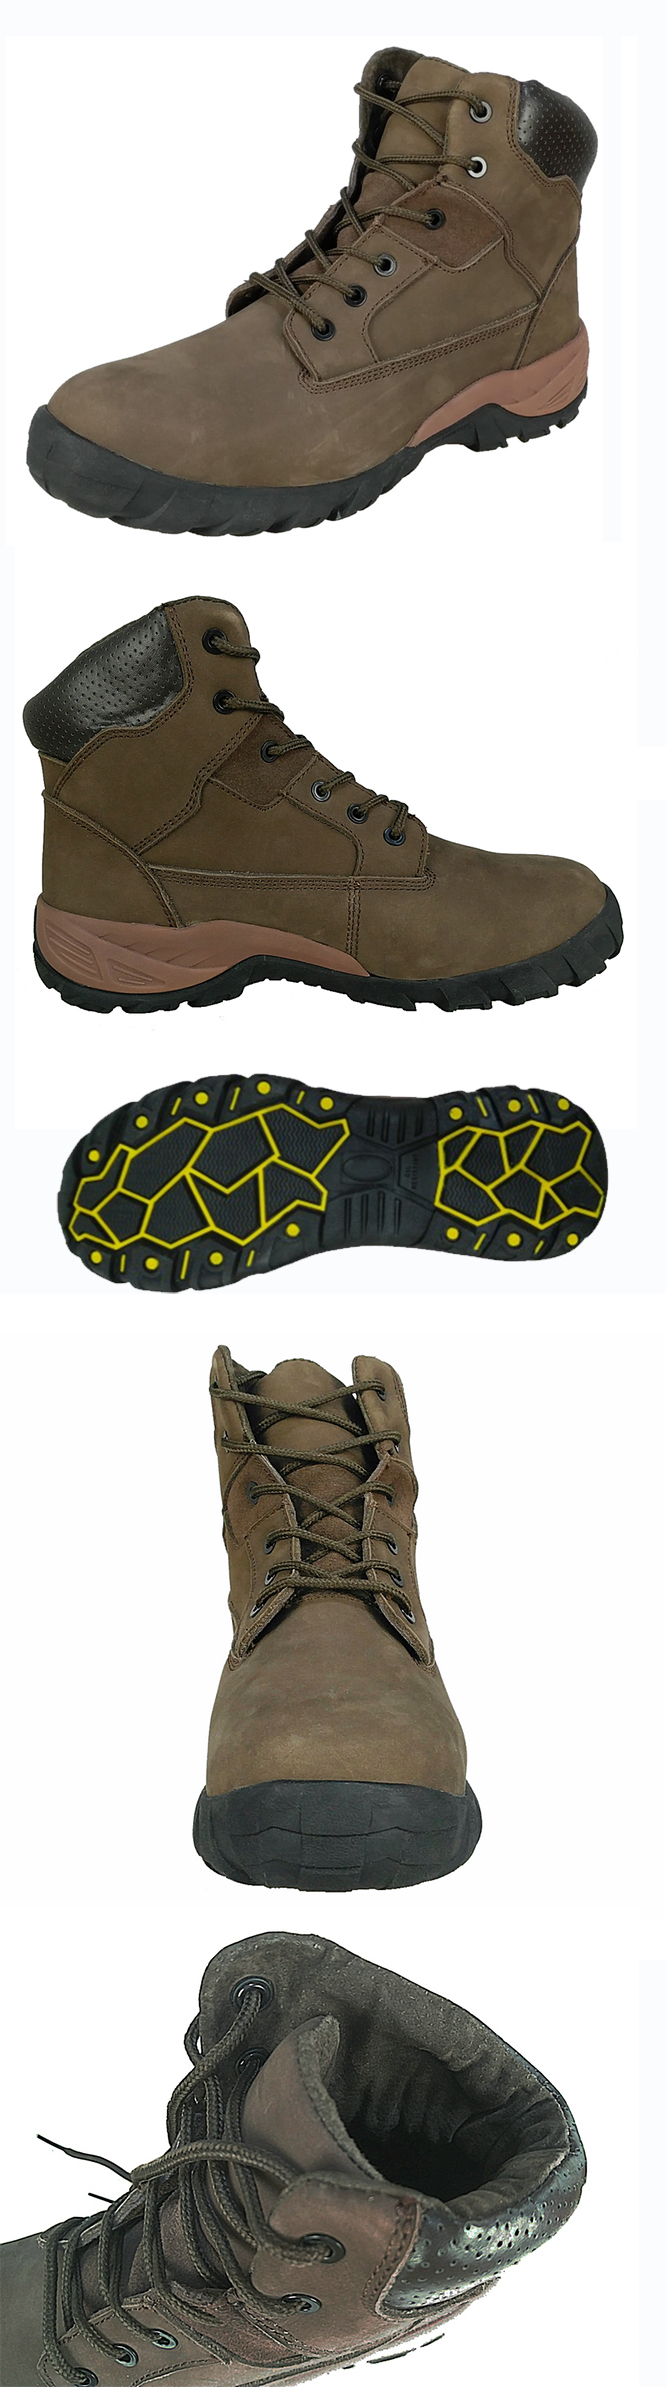 nubuck leather MD sole safety shoes SS8K271-X